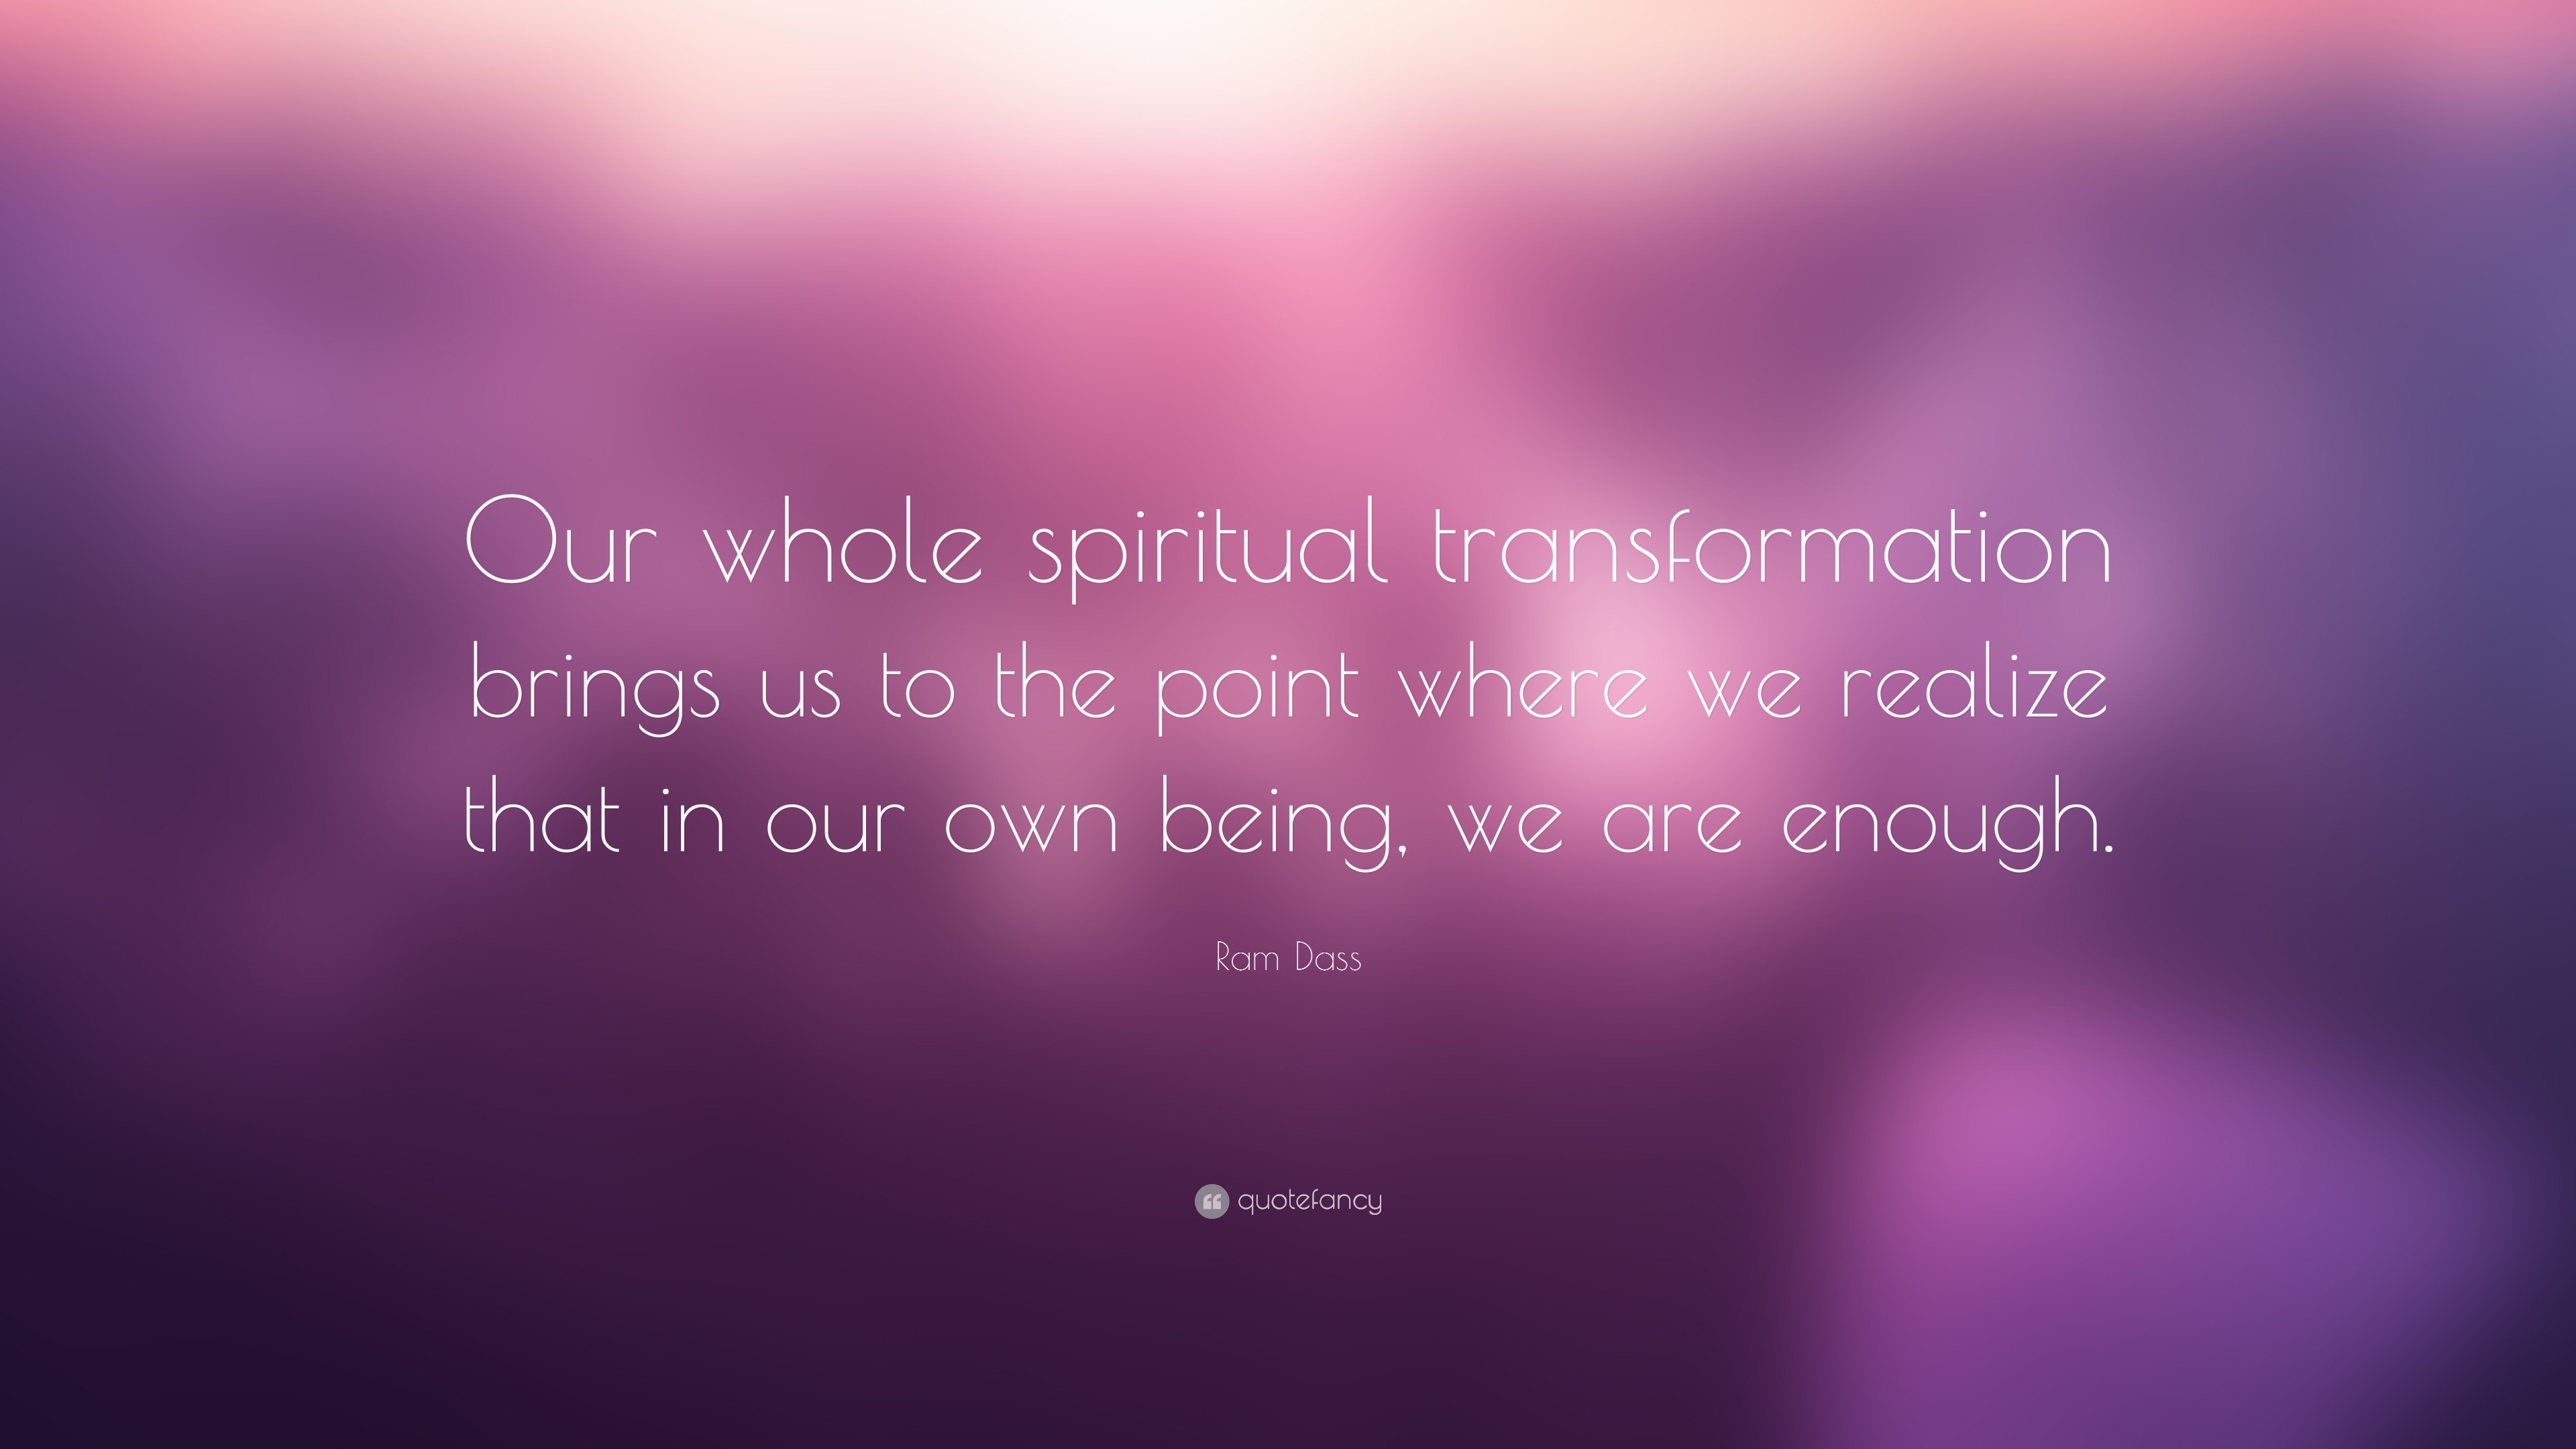 Spiritual Wallpapers With Quotes Pictures Ram Dass Quote Our Whole Spiritual Transformation Brings